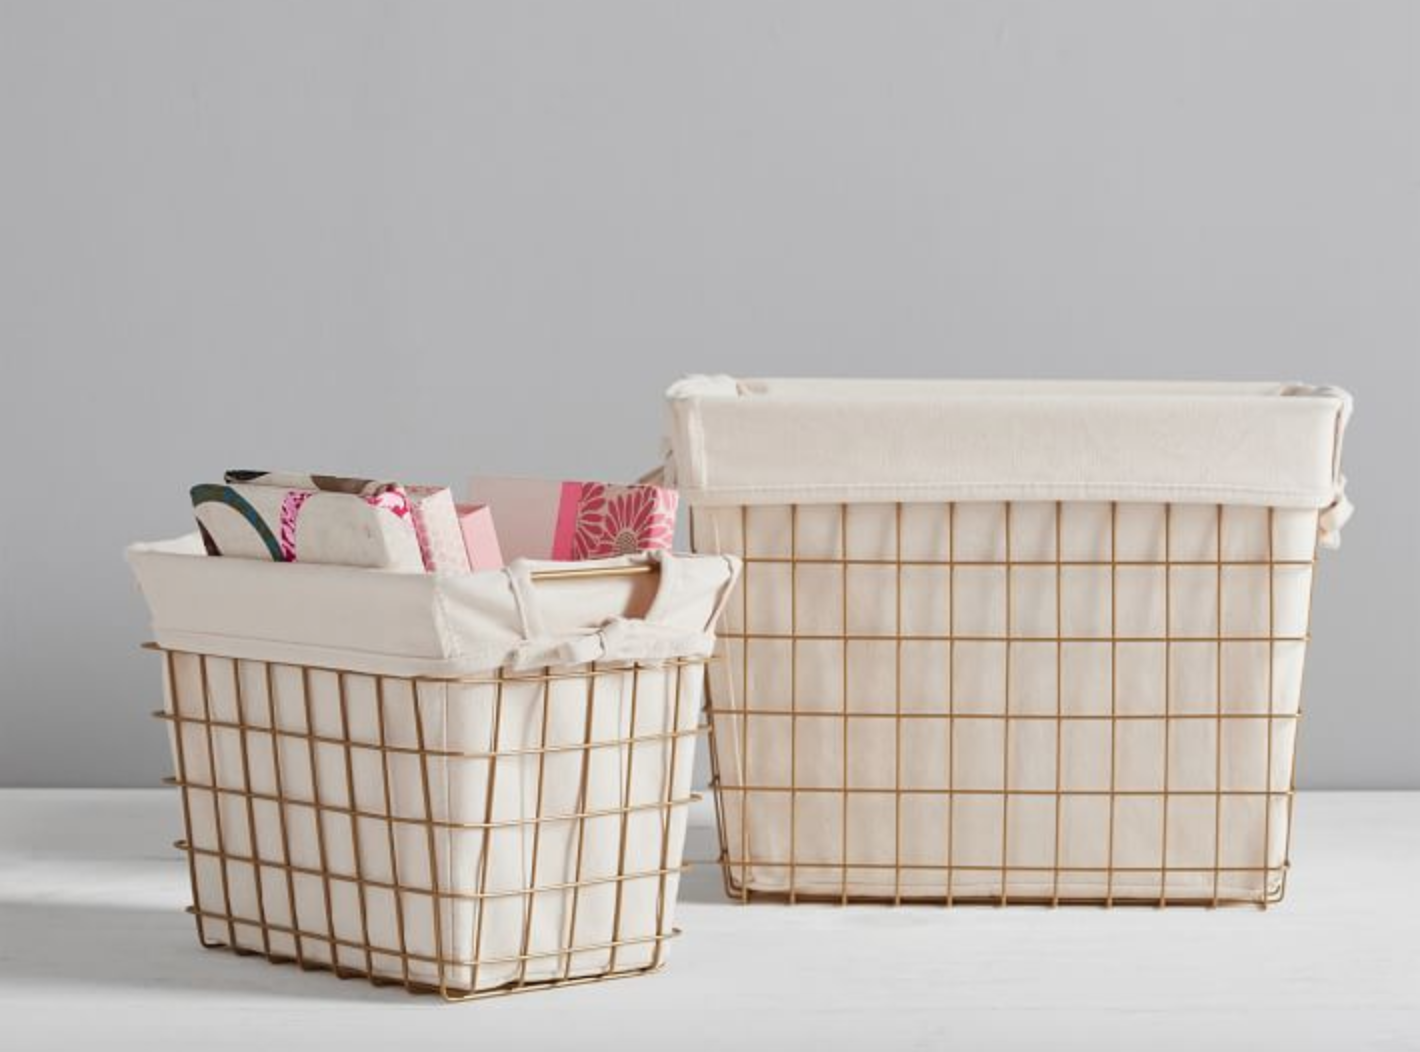 Pottery Barn lined wire storage baskets (gold colored wire, ivory colored linen lining)